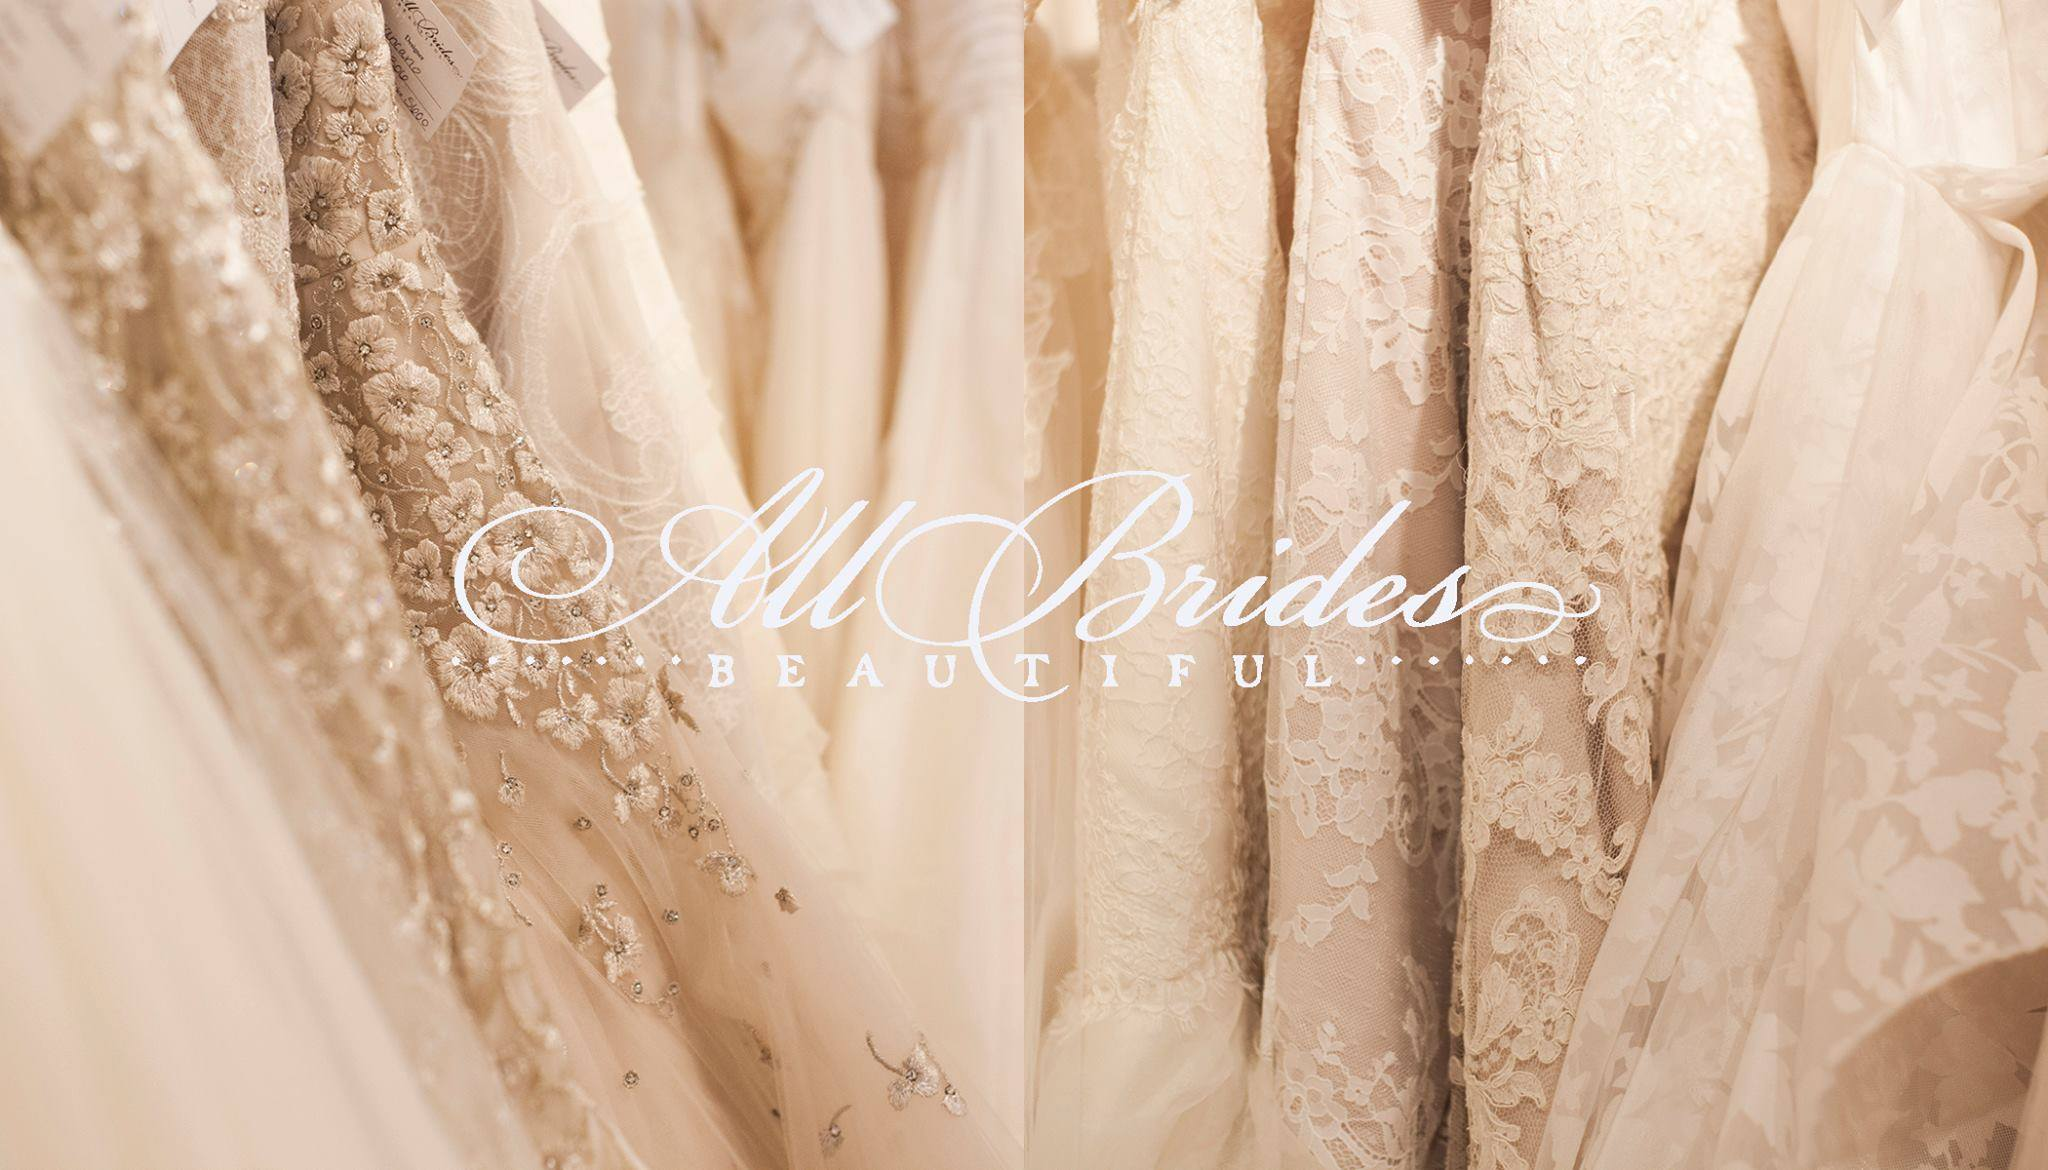 Wedding gown preservations with All Brides Beautiful - blog post